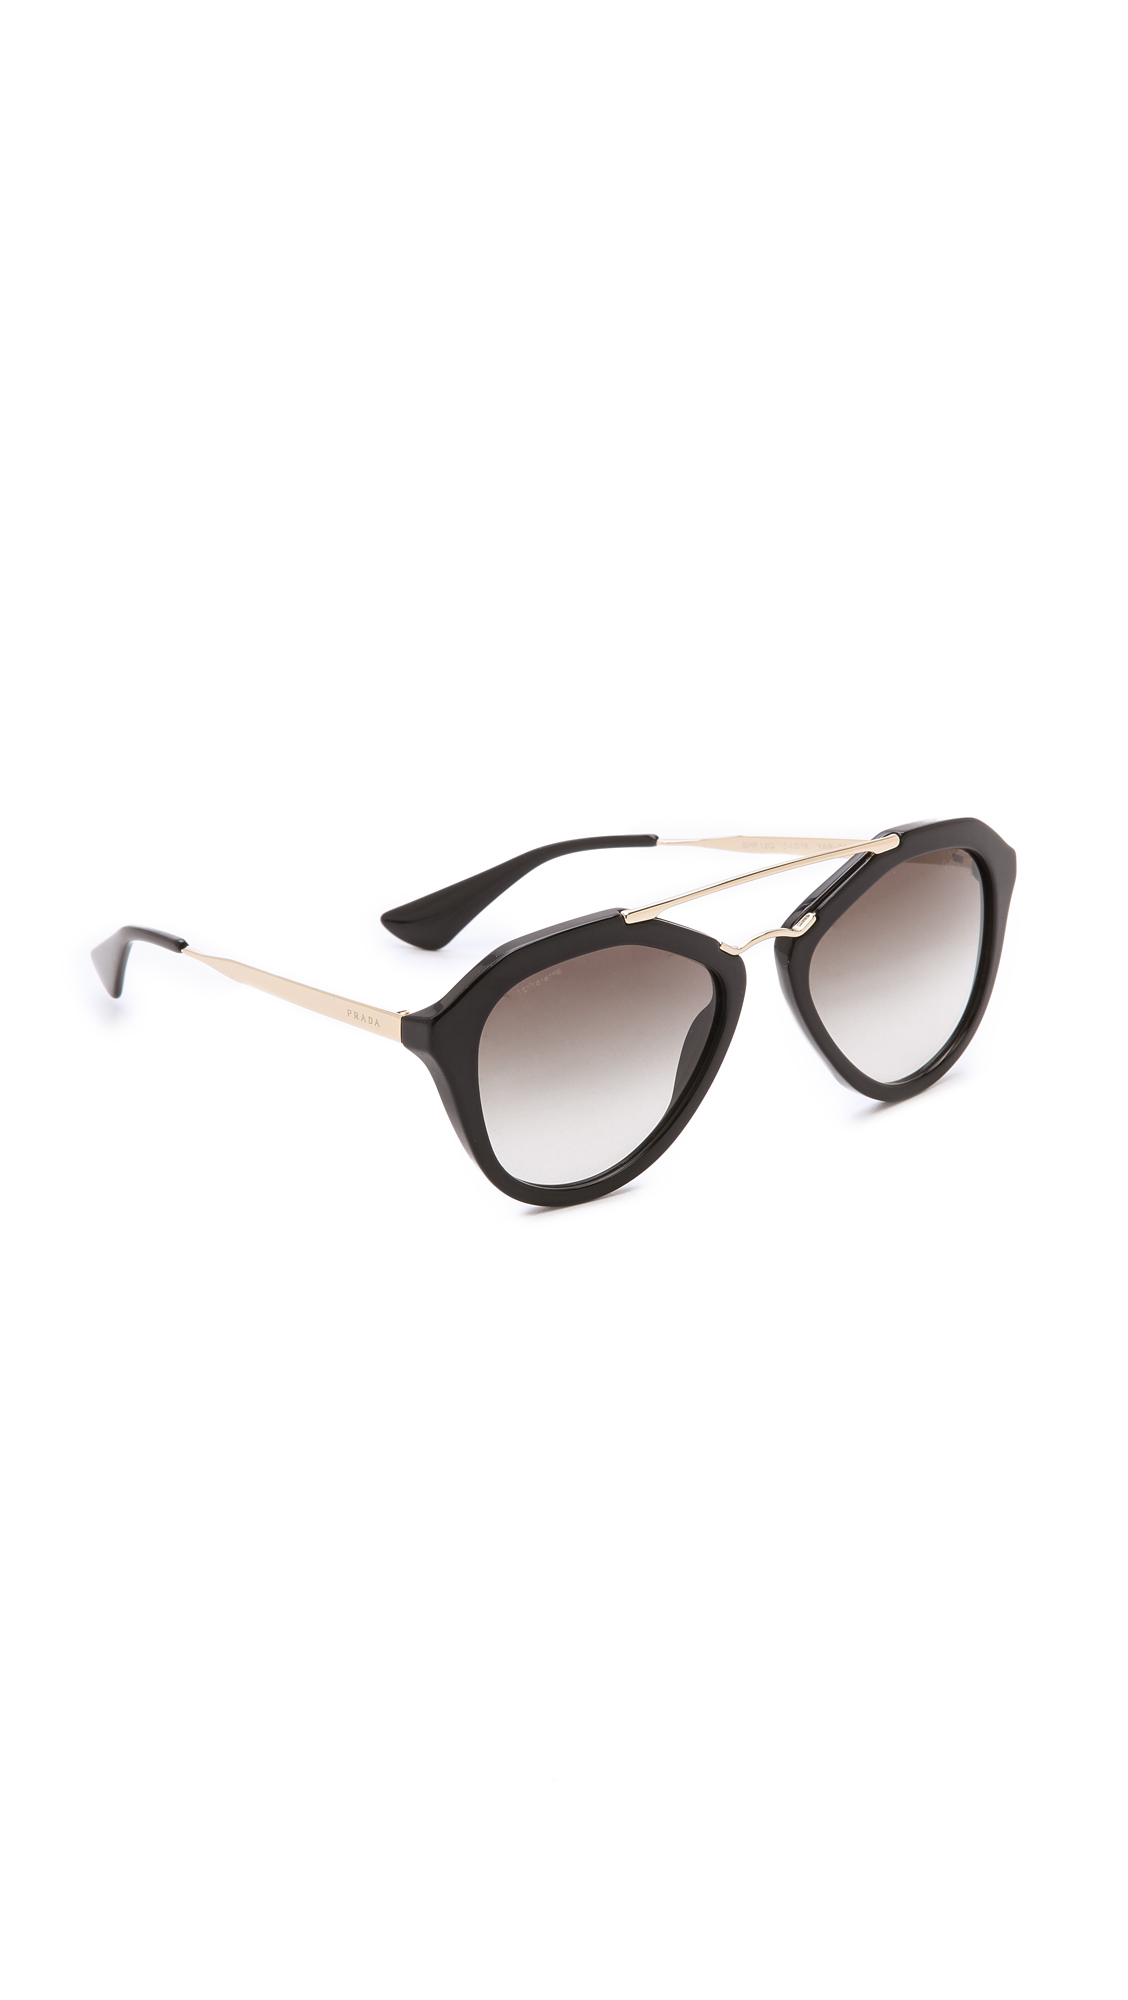 Prada Aviator Sunglasses - Black/Black at Shopbop